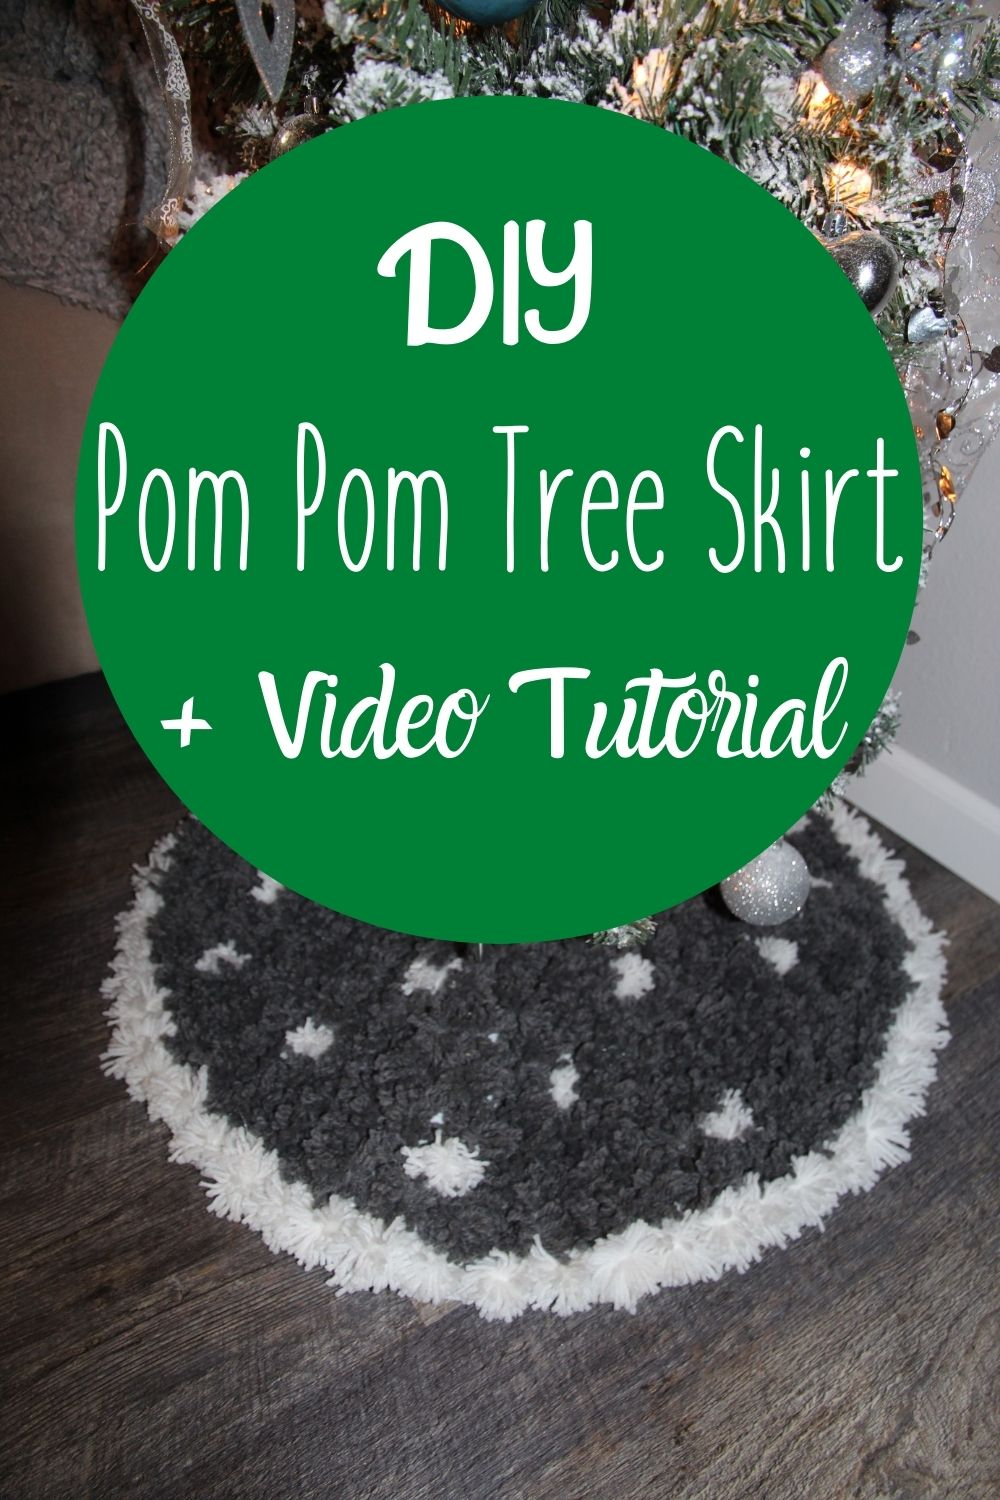 Make this cute and really easy tree skirt made from felt and yarn. This DIY Pom Pom Tree Skirt is a budget-friendly DIY project anyone can do. via @homebyjenn